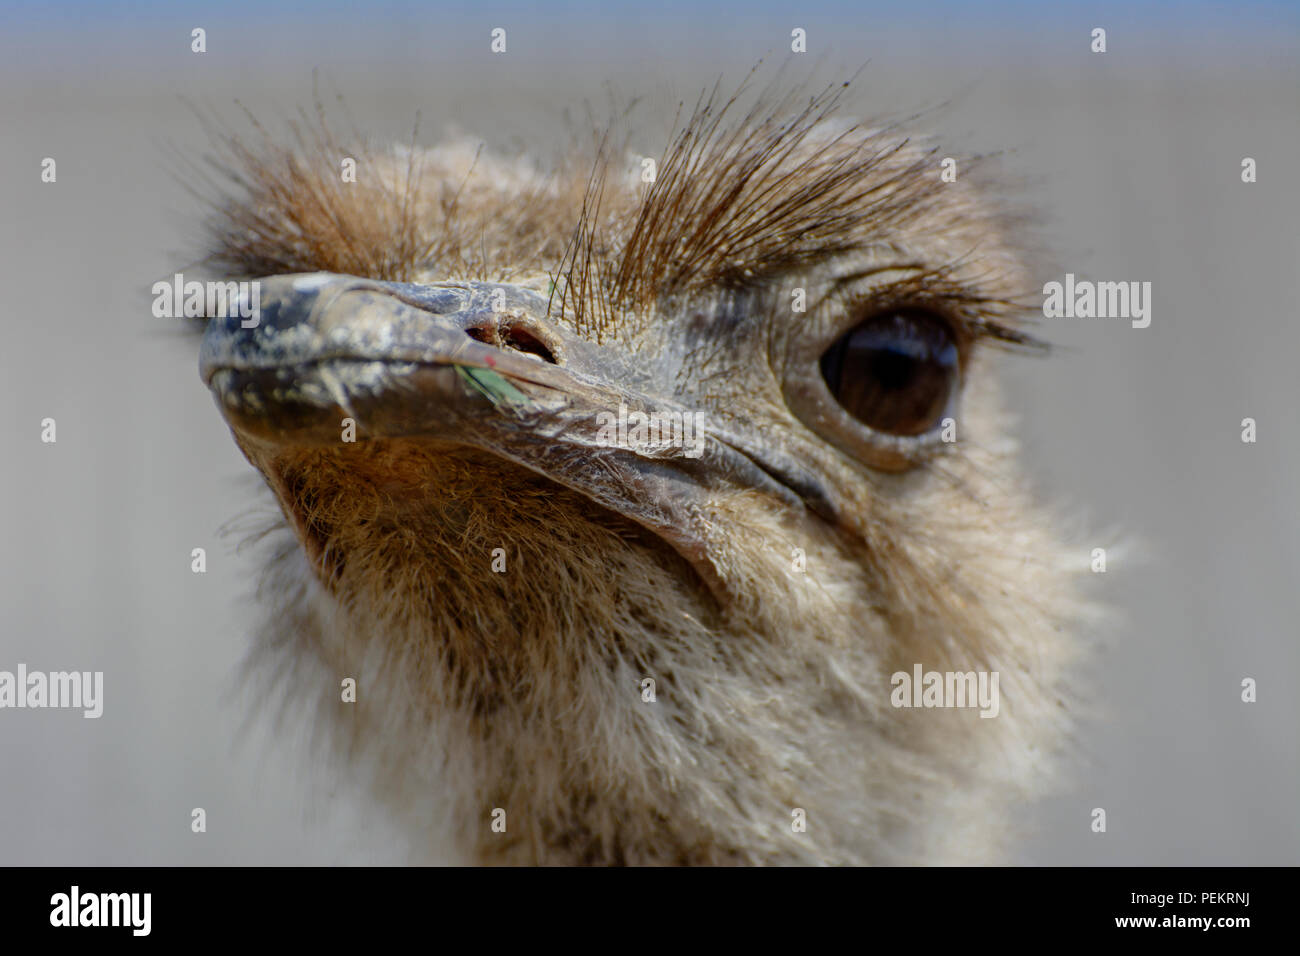 The head of an ostrich close-up on a blurred background. Red beak, surprised big eyes and tousled bristles. Shallow depth of field. - Stock Image